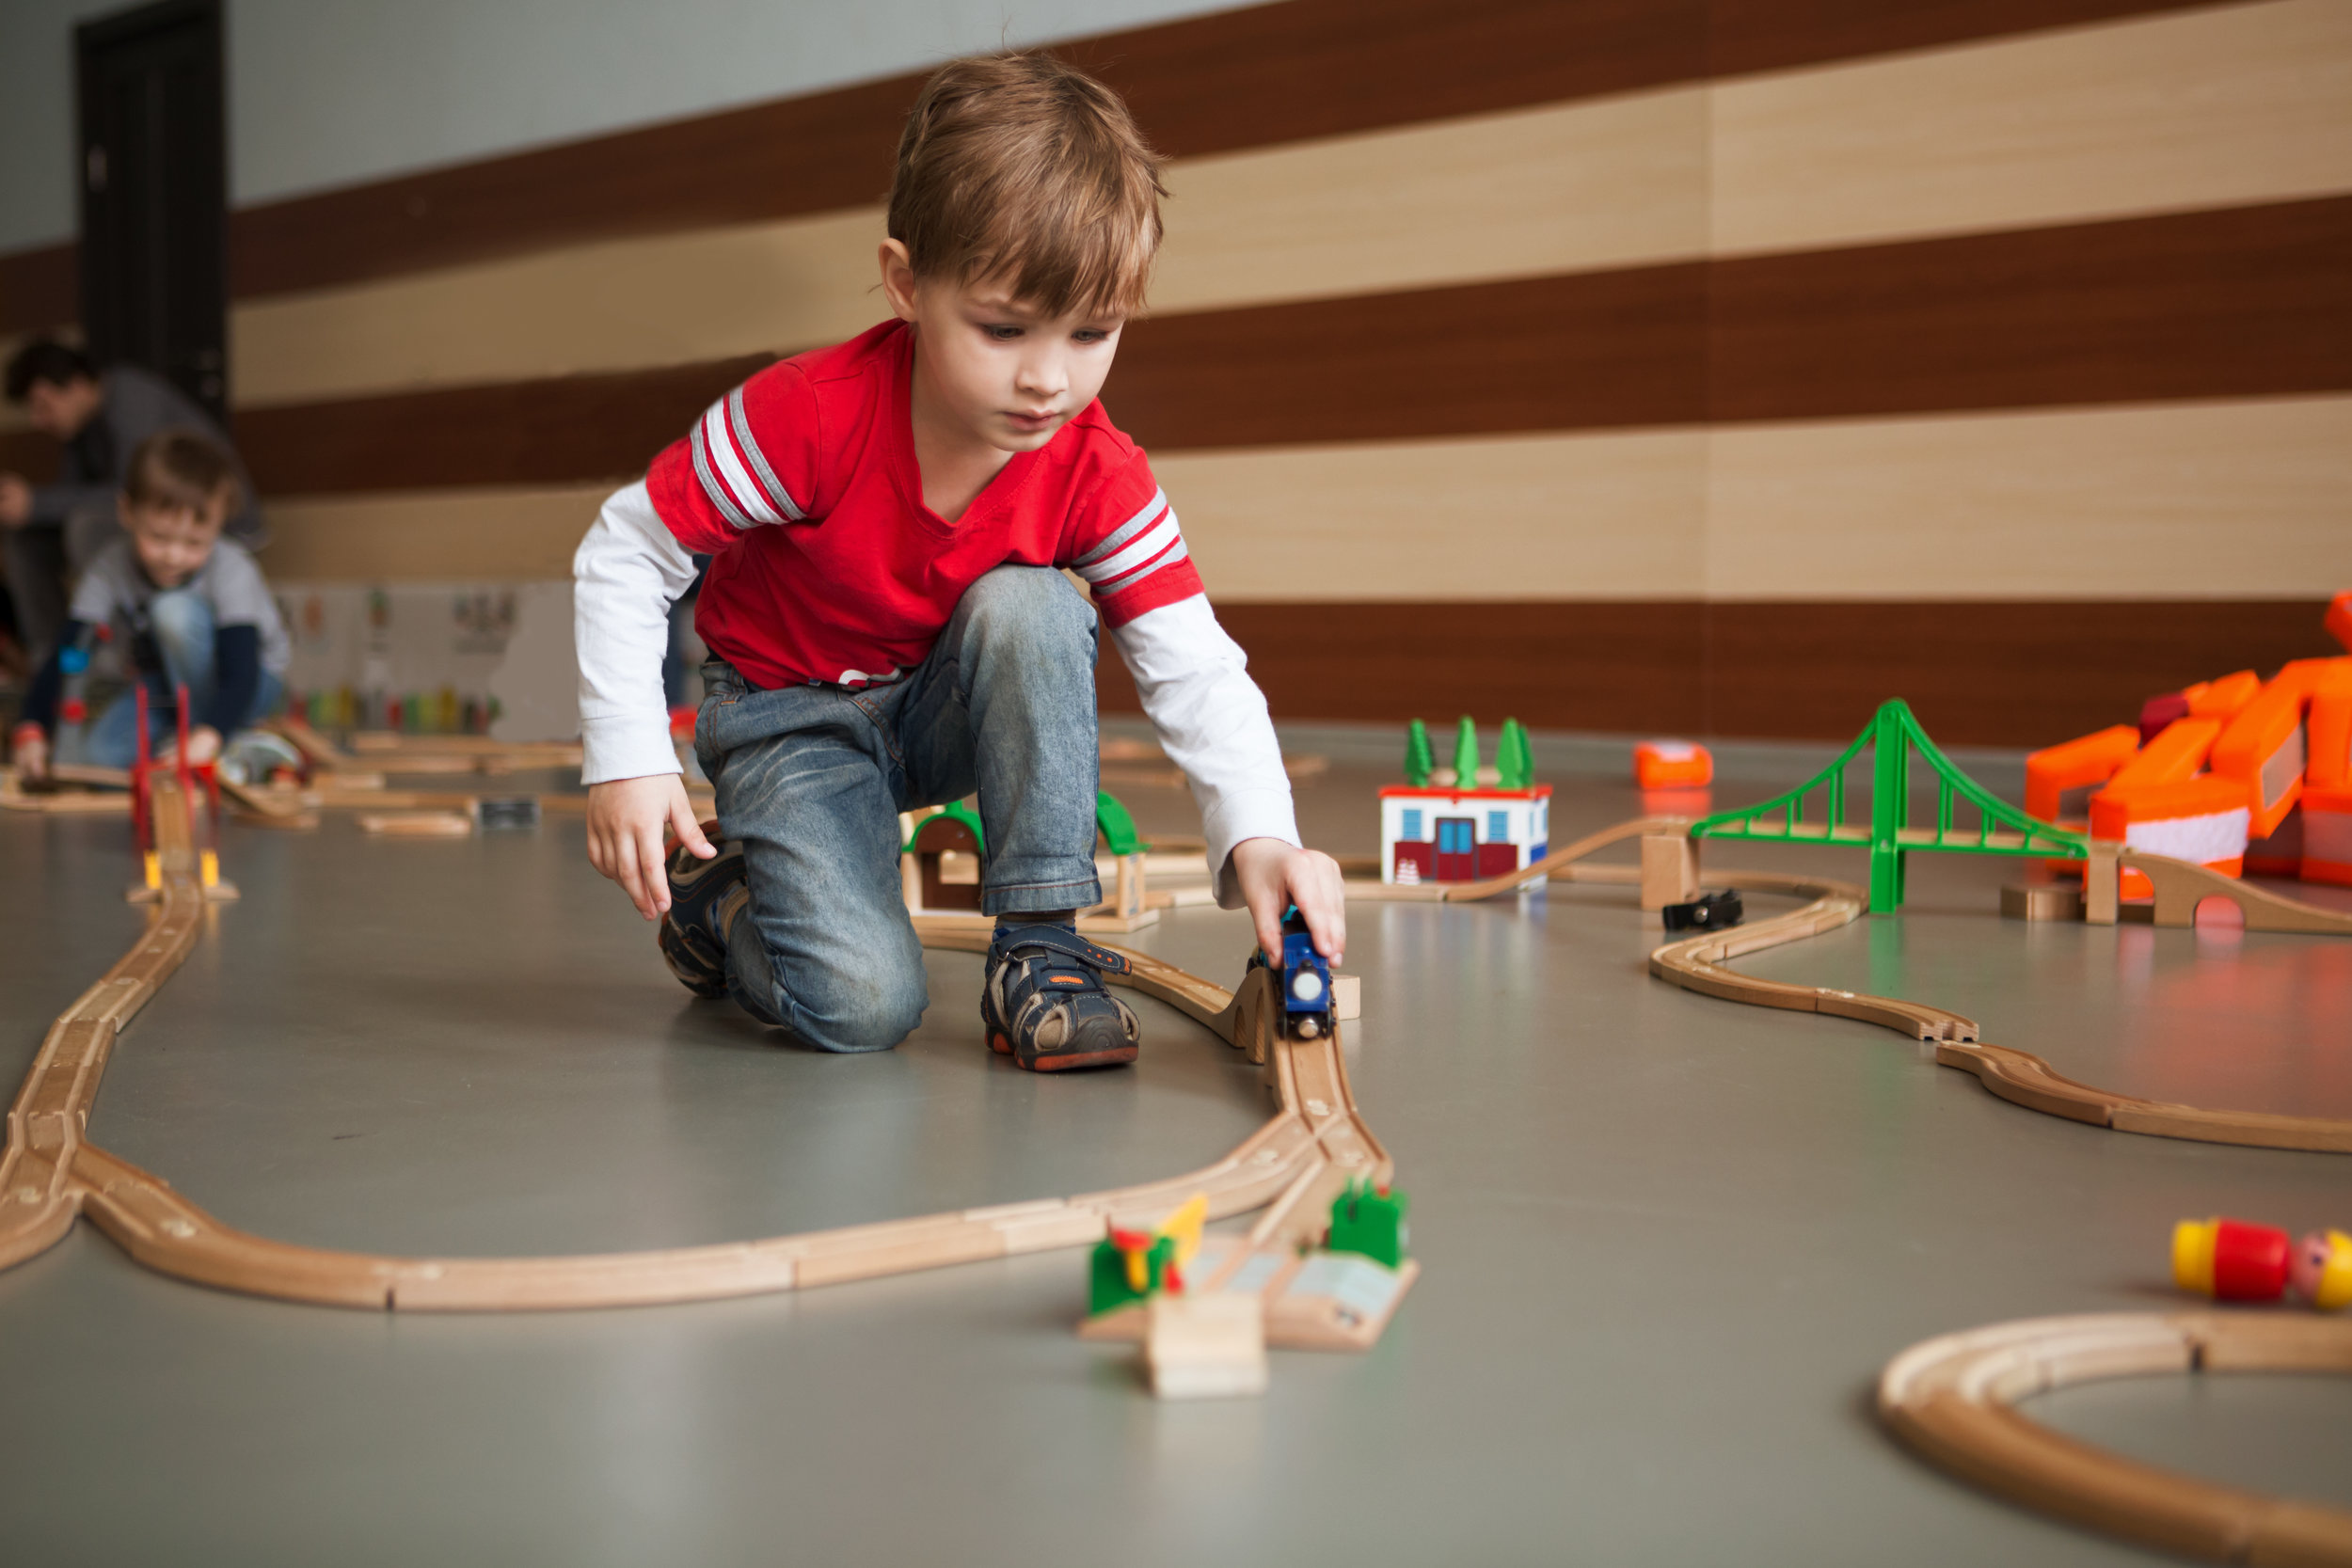 Well designed toys lead to open-ended play